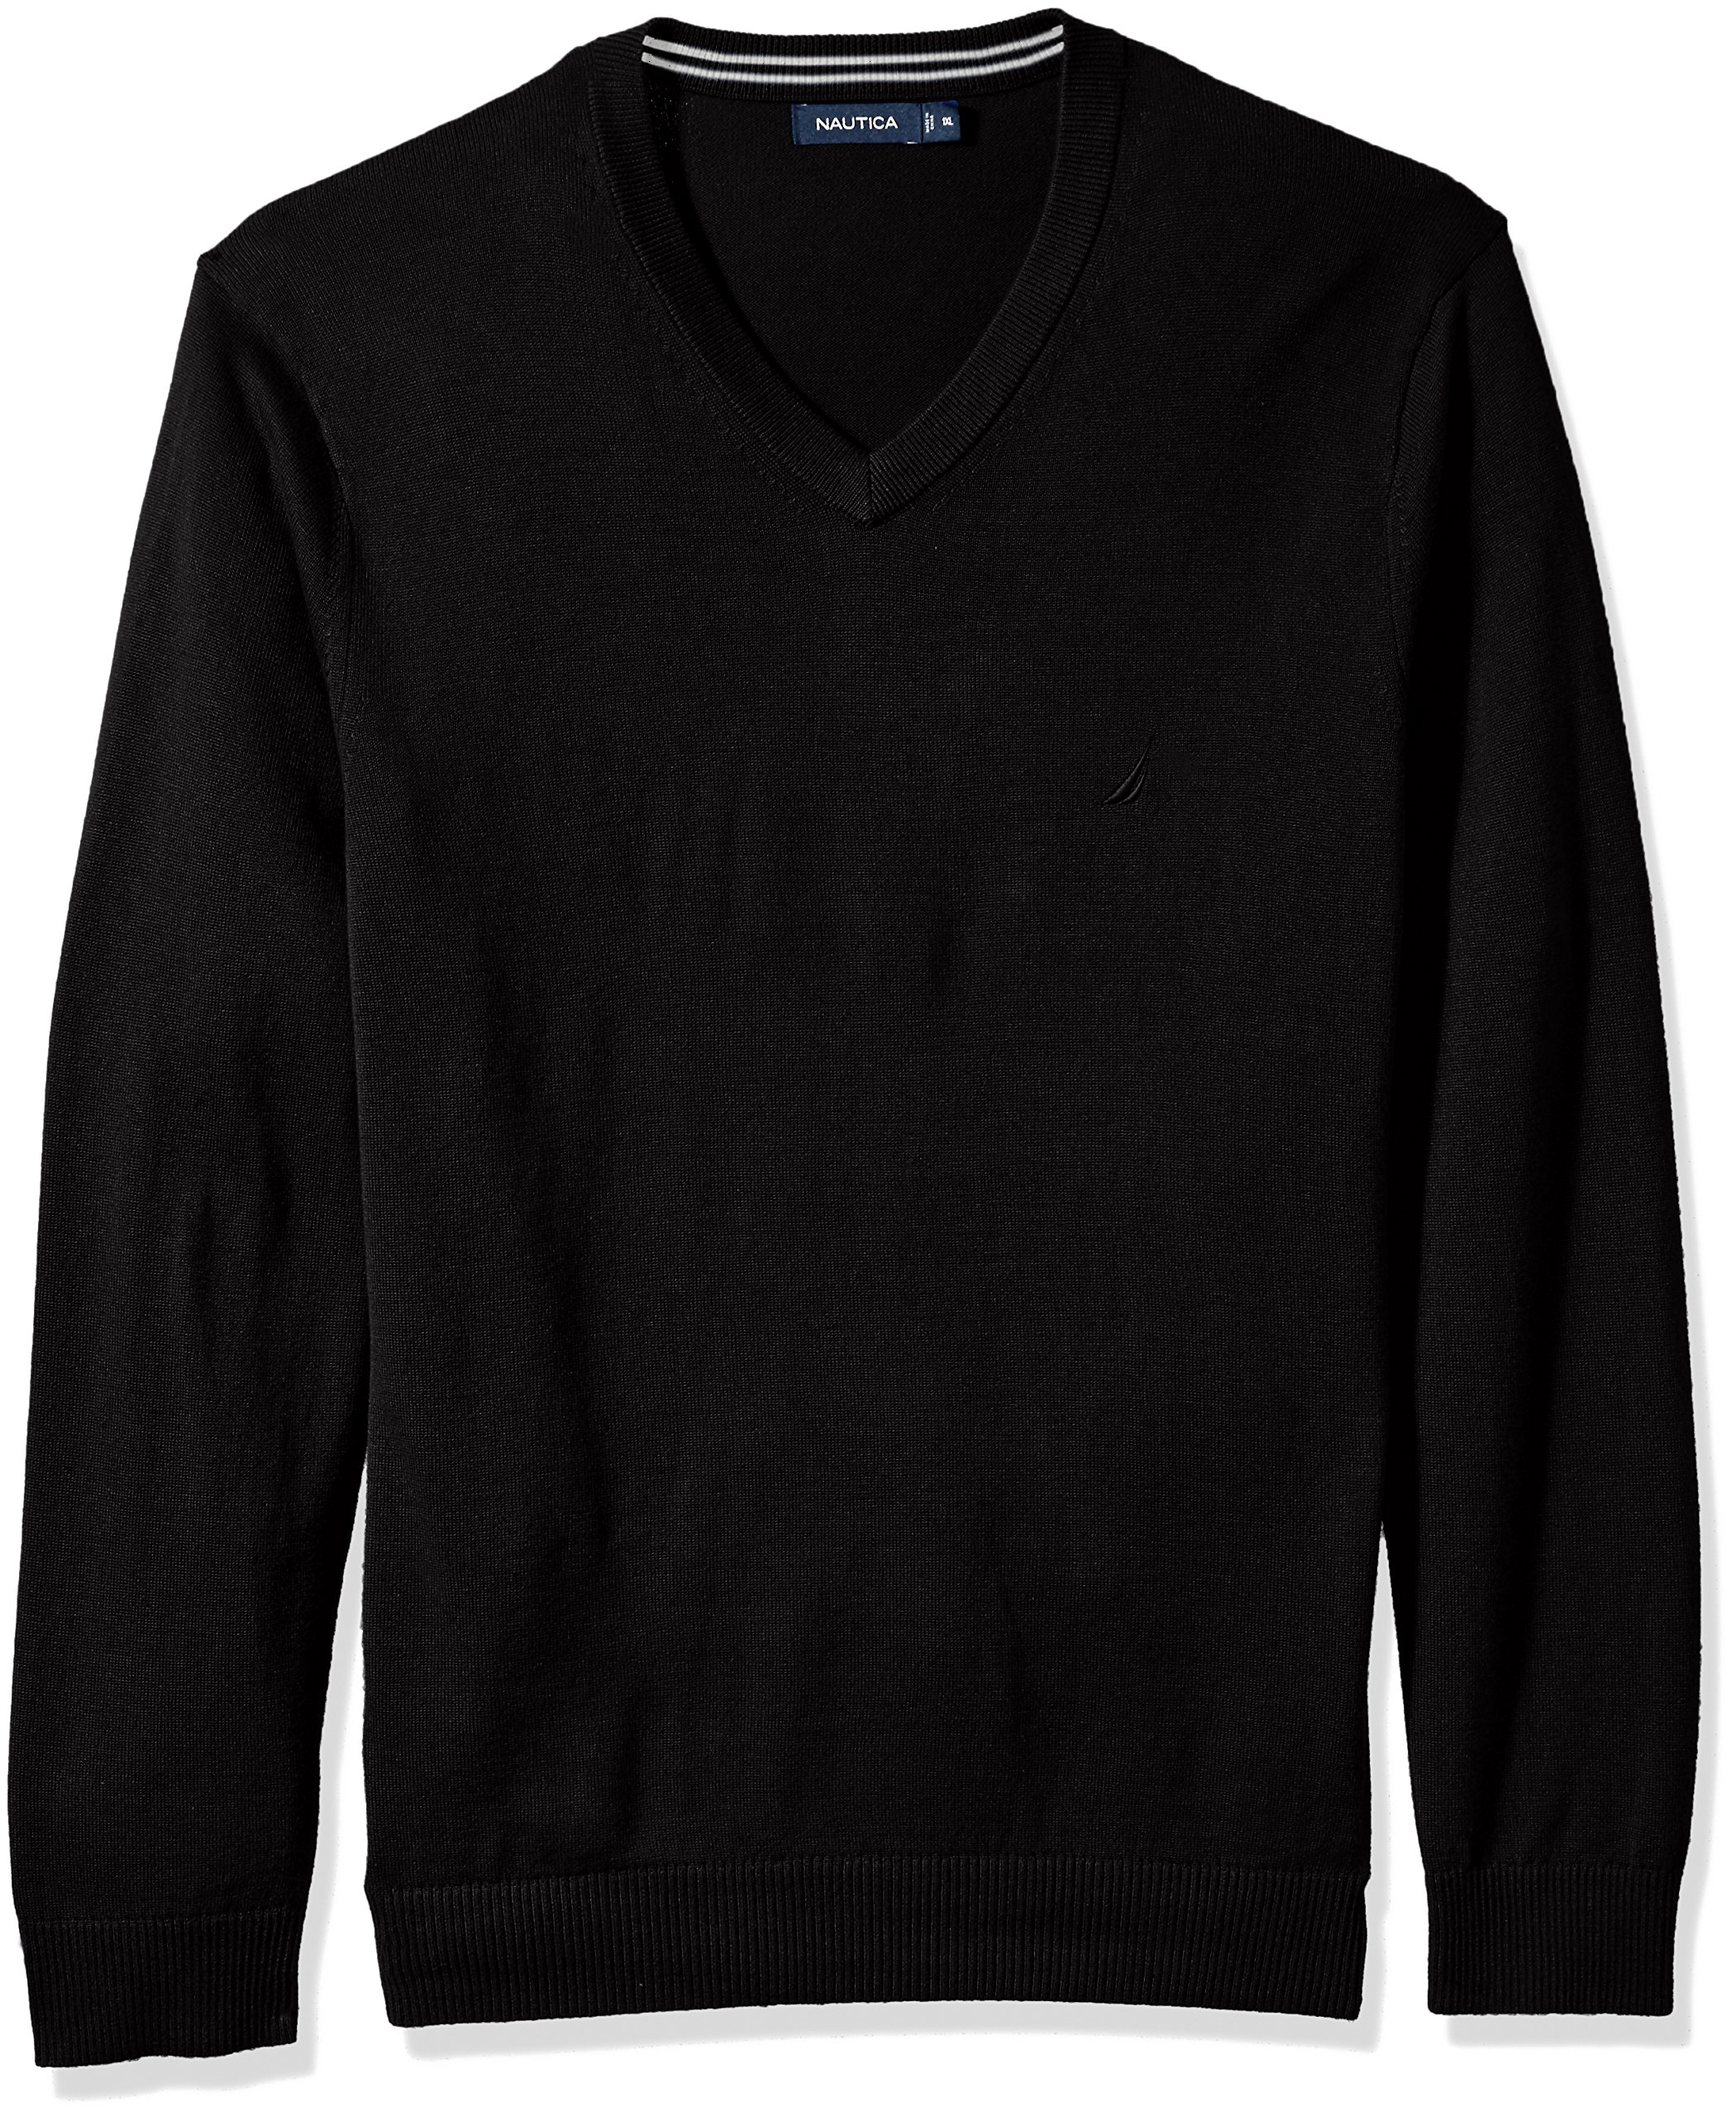 Nautica Men's Standard Long Sleeve Solid Classic V-Neck Sweater, True Black, Large by Nautica